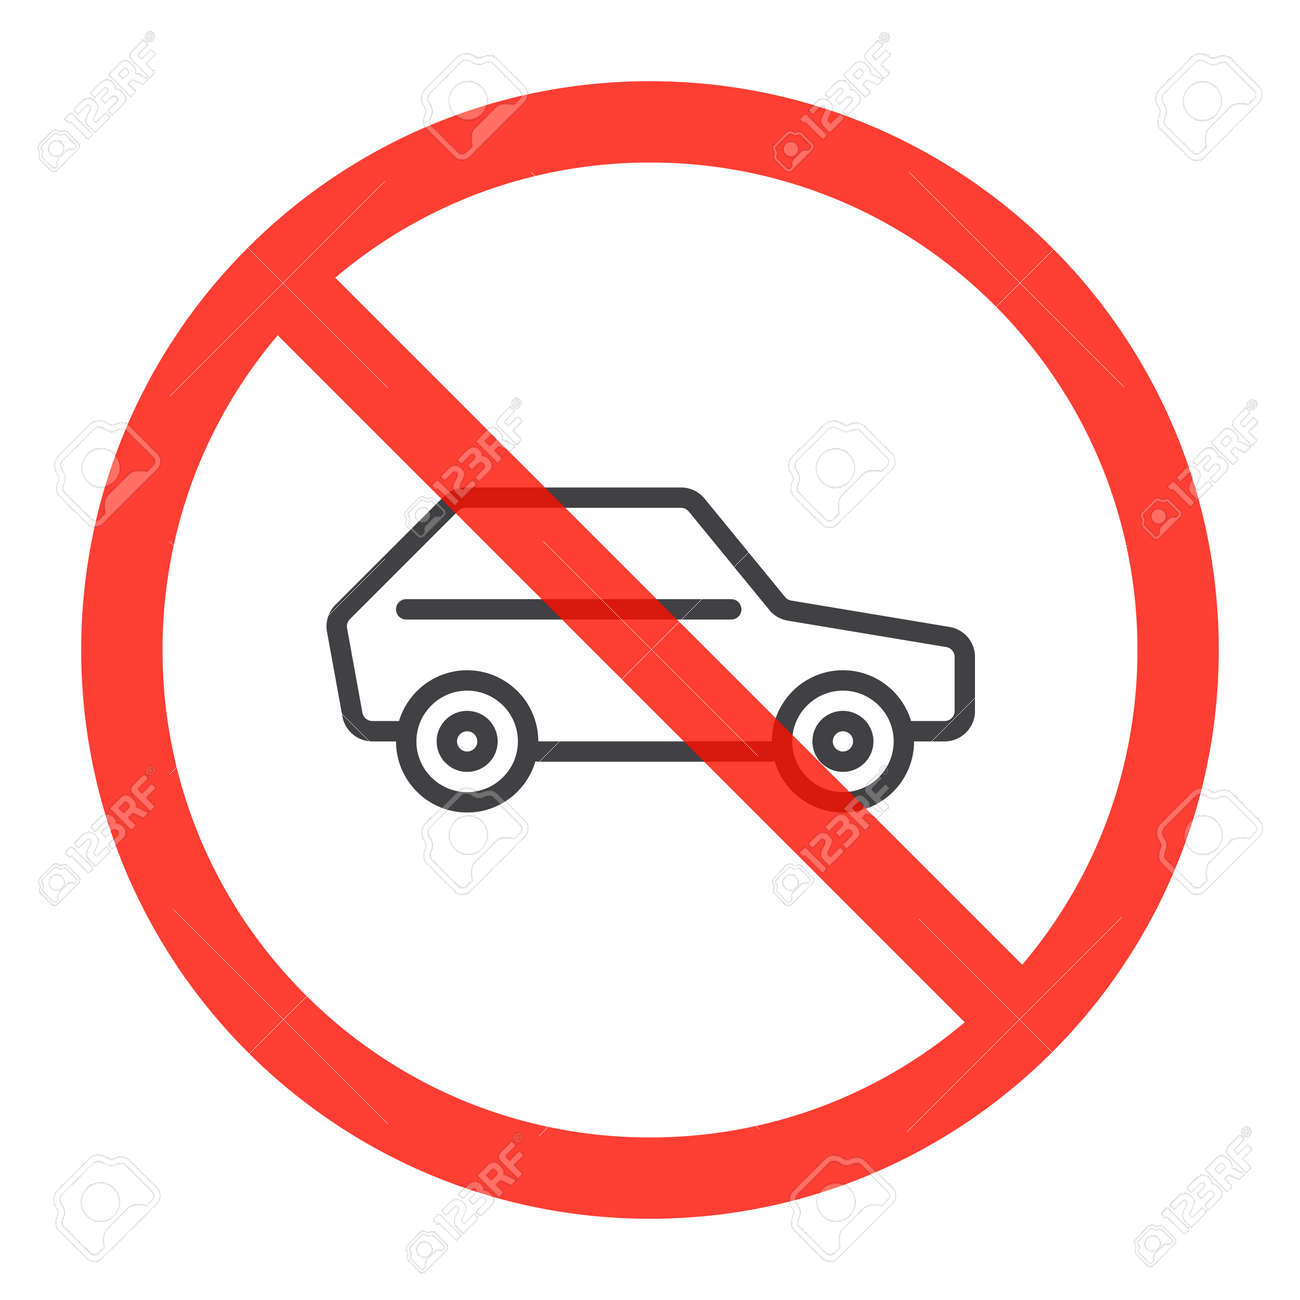 Car Line Icon In Prohibition Red Circle No Parking Ban Sign